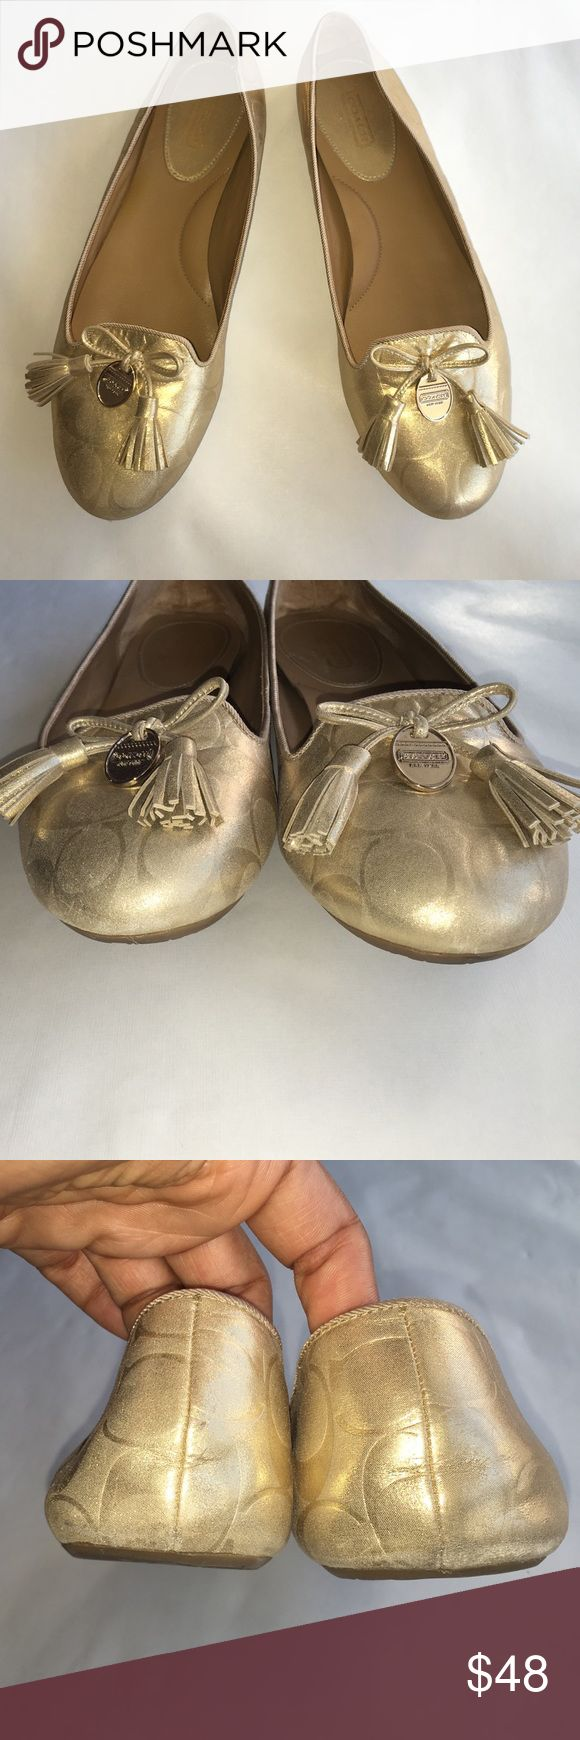 Coach flats Coach Dahlila metallic gold flat with fringe bow and medallion charm on the foot. Great condition with minor wear of the material on the toes and heels (per pic 2-3). Nothing to cry about. Still have a lot of life left. These are medium width. True to size. Perfect for the fall approaching!!! Coach Shoes Flats & Loafers